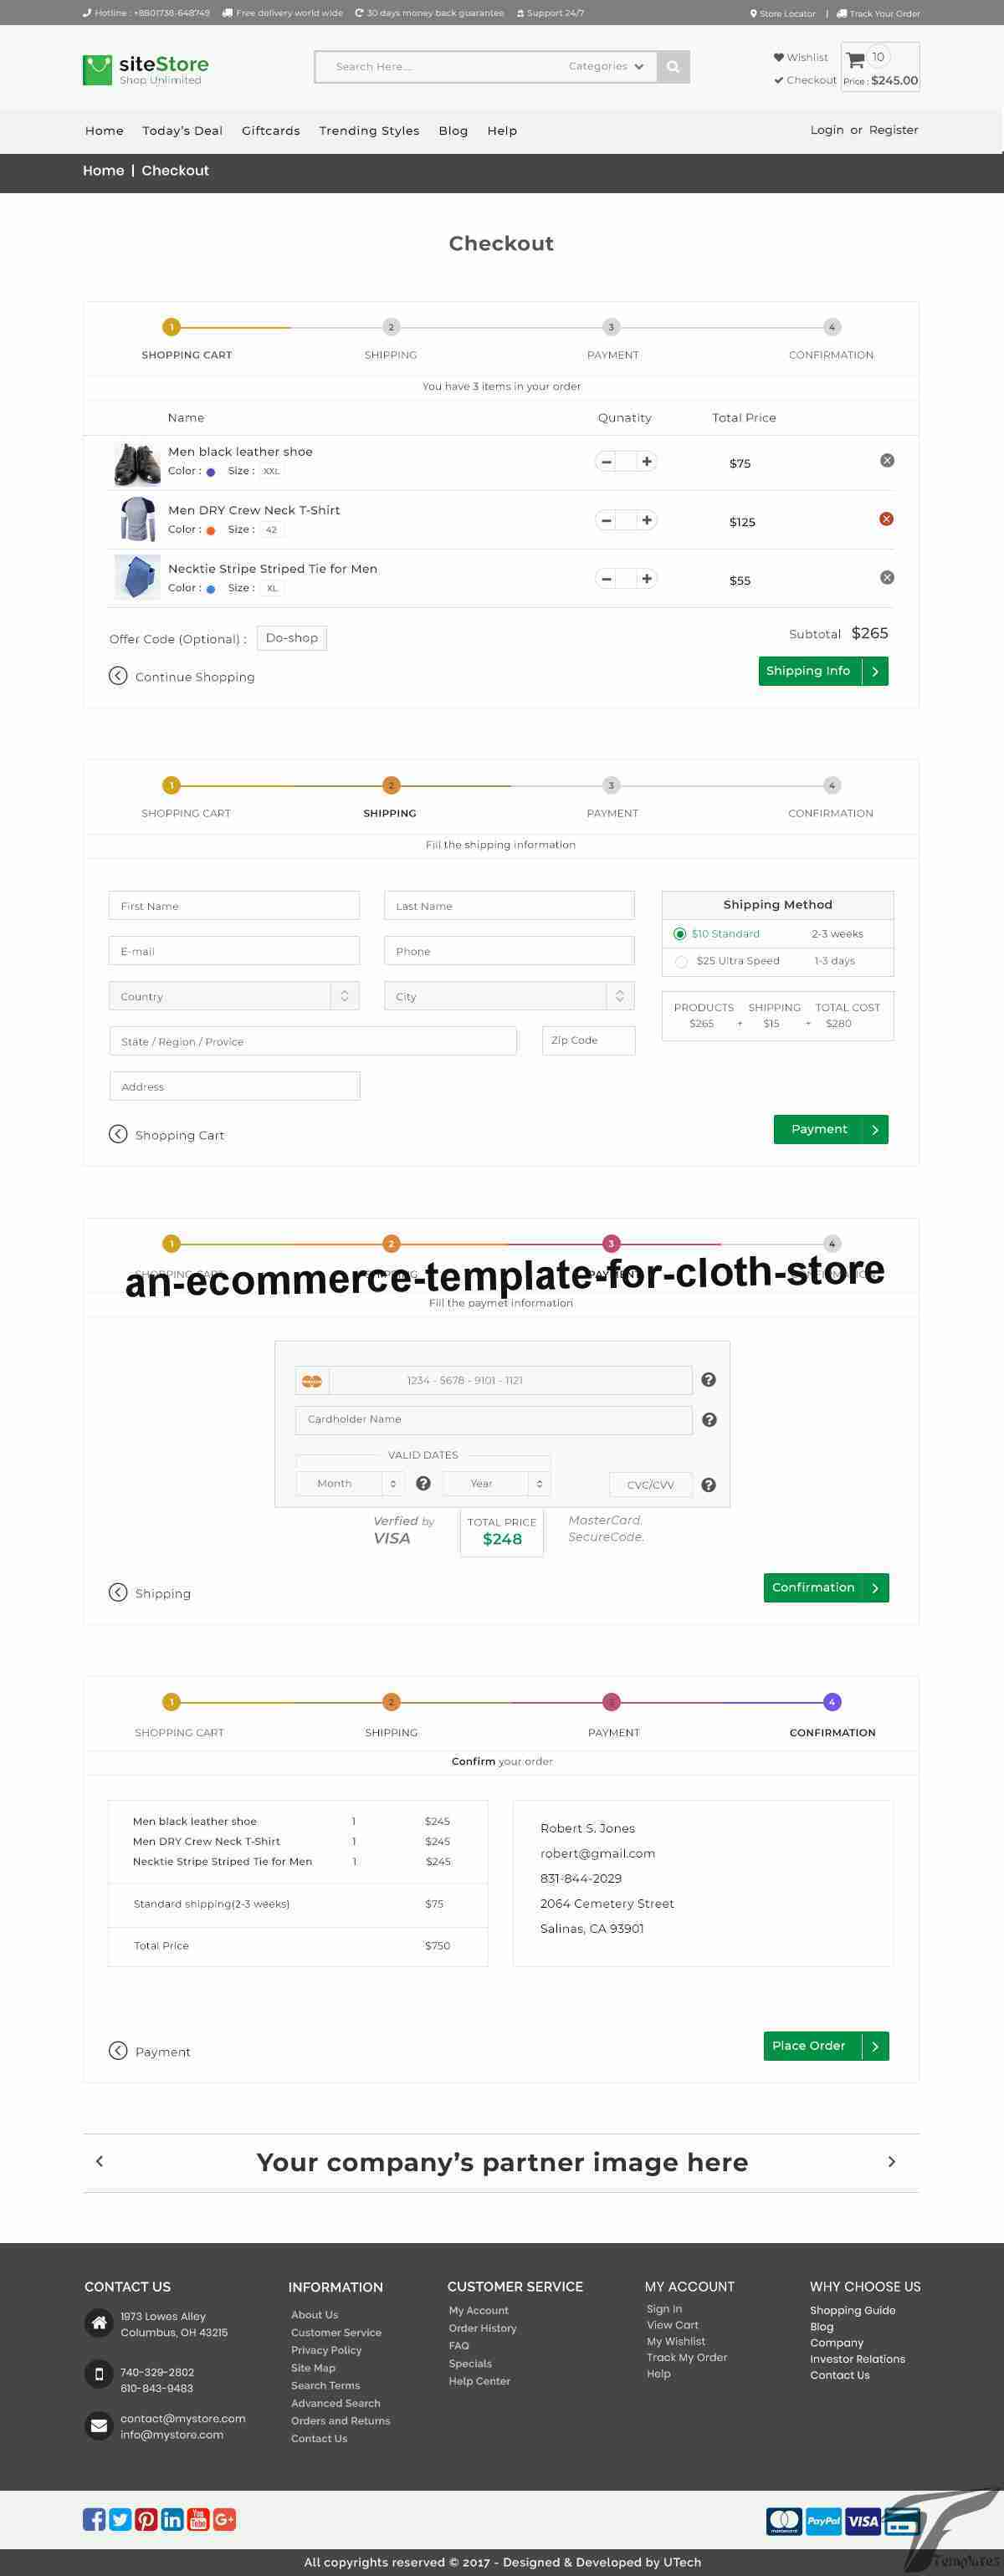 https://images.besthemes.com/images/h1_an-ecommerce-template-for-cloth-store8-_-244967348/preview/08_checkout-2.jpg